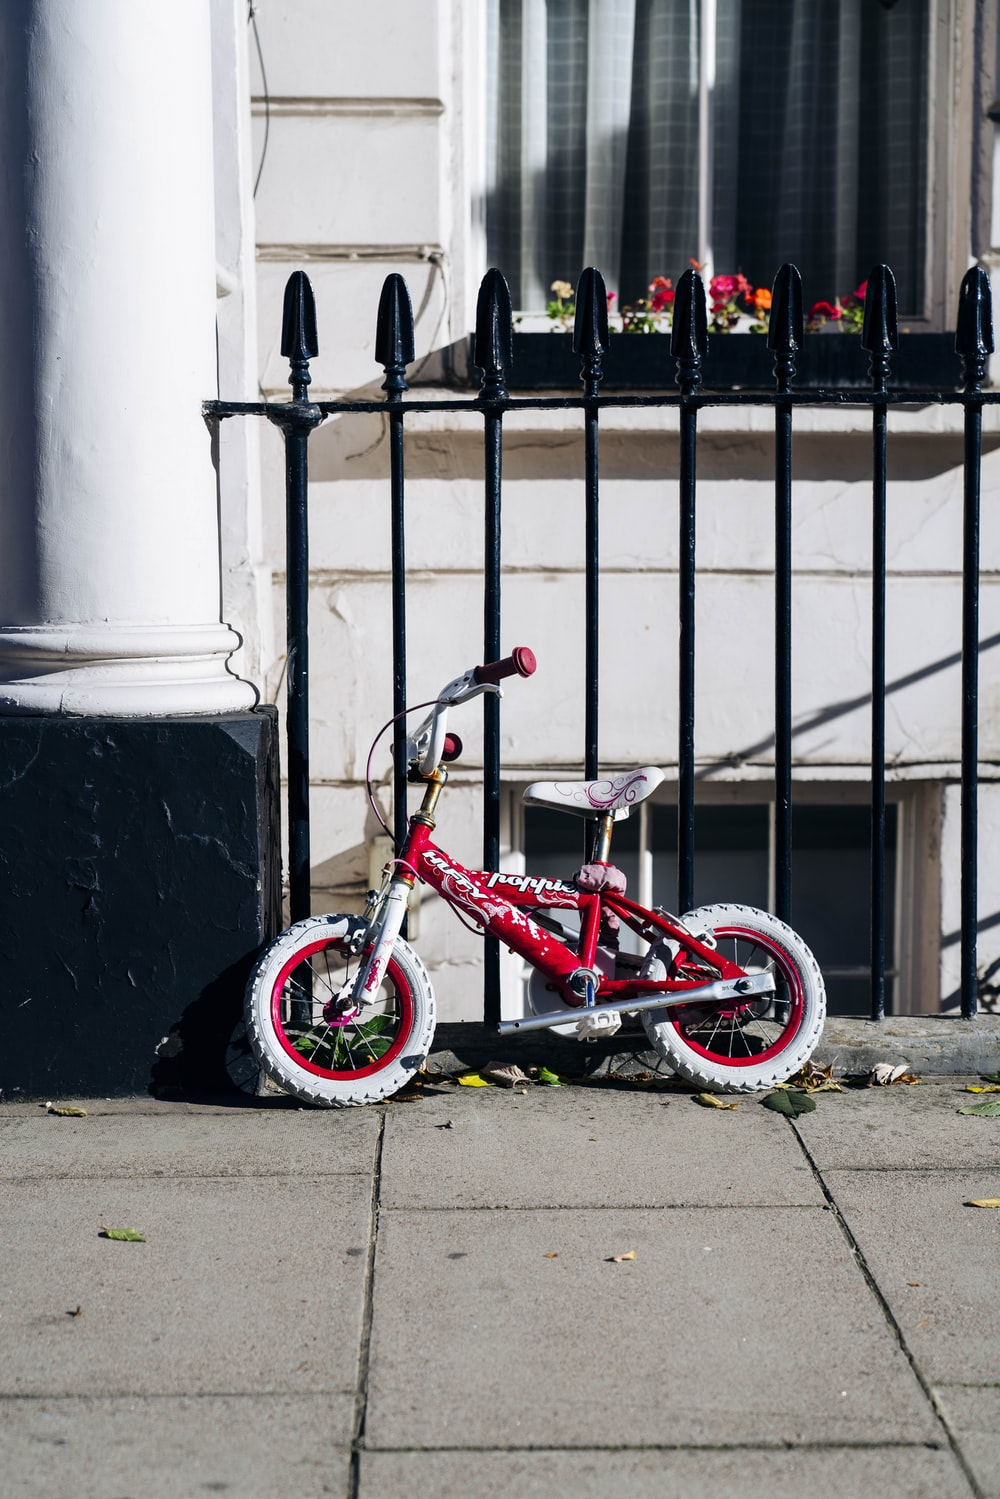 BMX bike parked beside fence and building during day